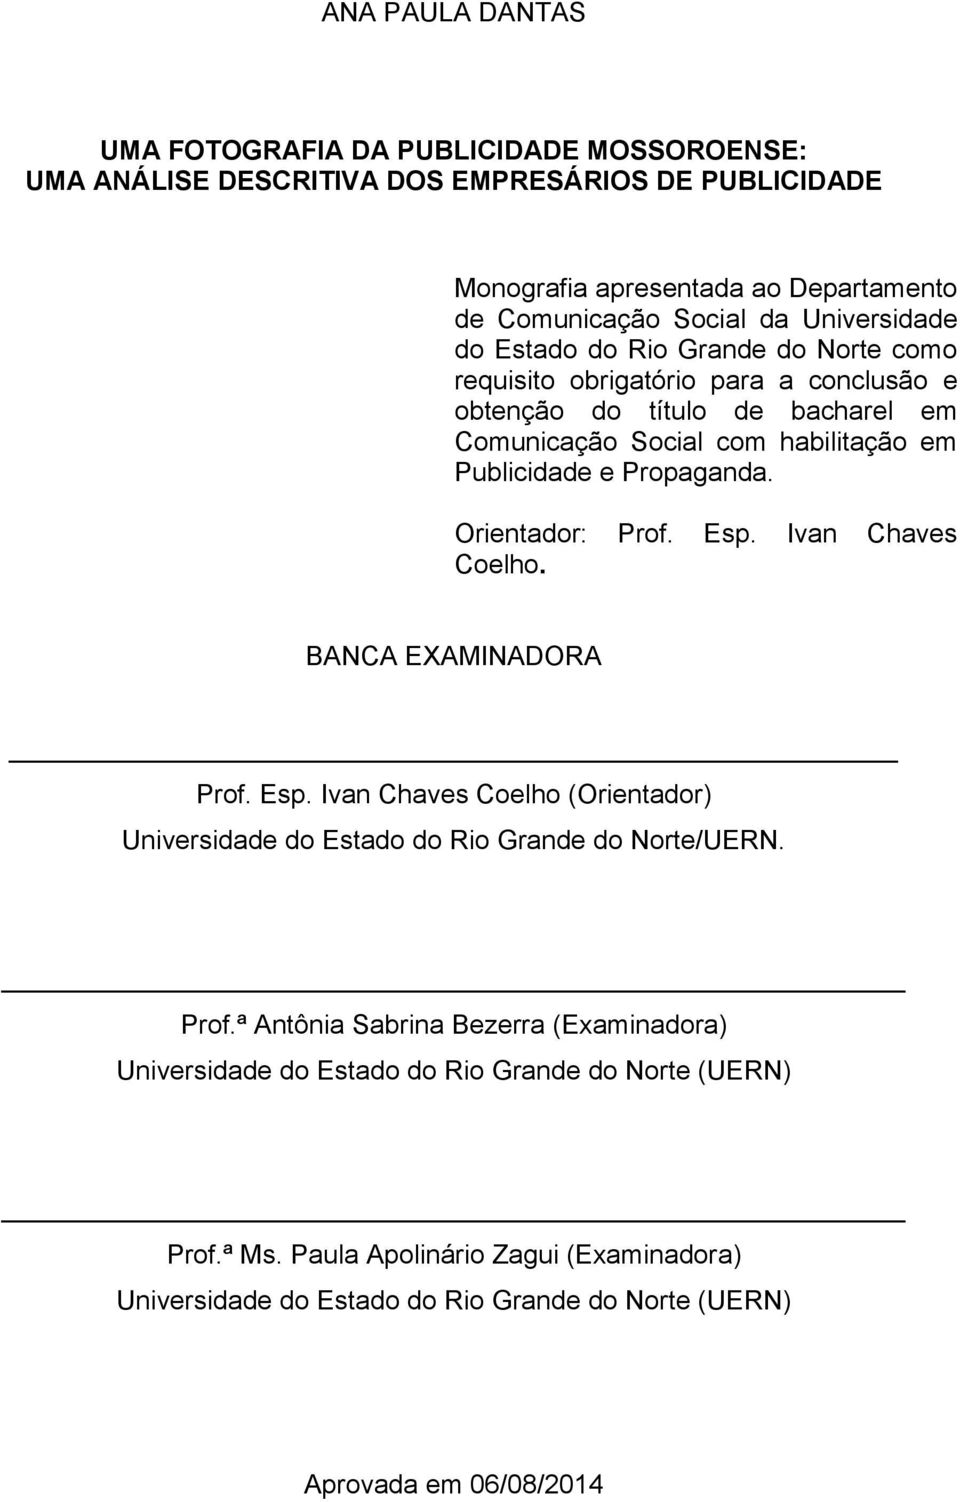 Propaganda. Orientador: Prof. Esp. Ivan Chaves Coelho. BANCA EXAMINADORA Prof. Esp. Ivan Chaves Coelho (Orientador) Universidade do Estado do Rio Grande do Norte/UERN. Prof.ª Antônia Sabrina Bezerra (Examinadora) Universidade do Estado do Rio Grande do Norte (UERN) Prof.